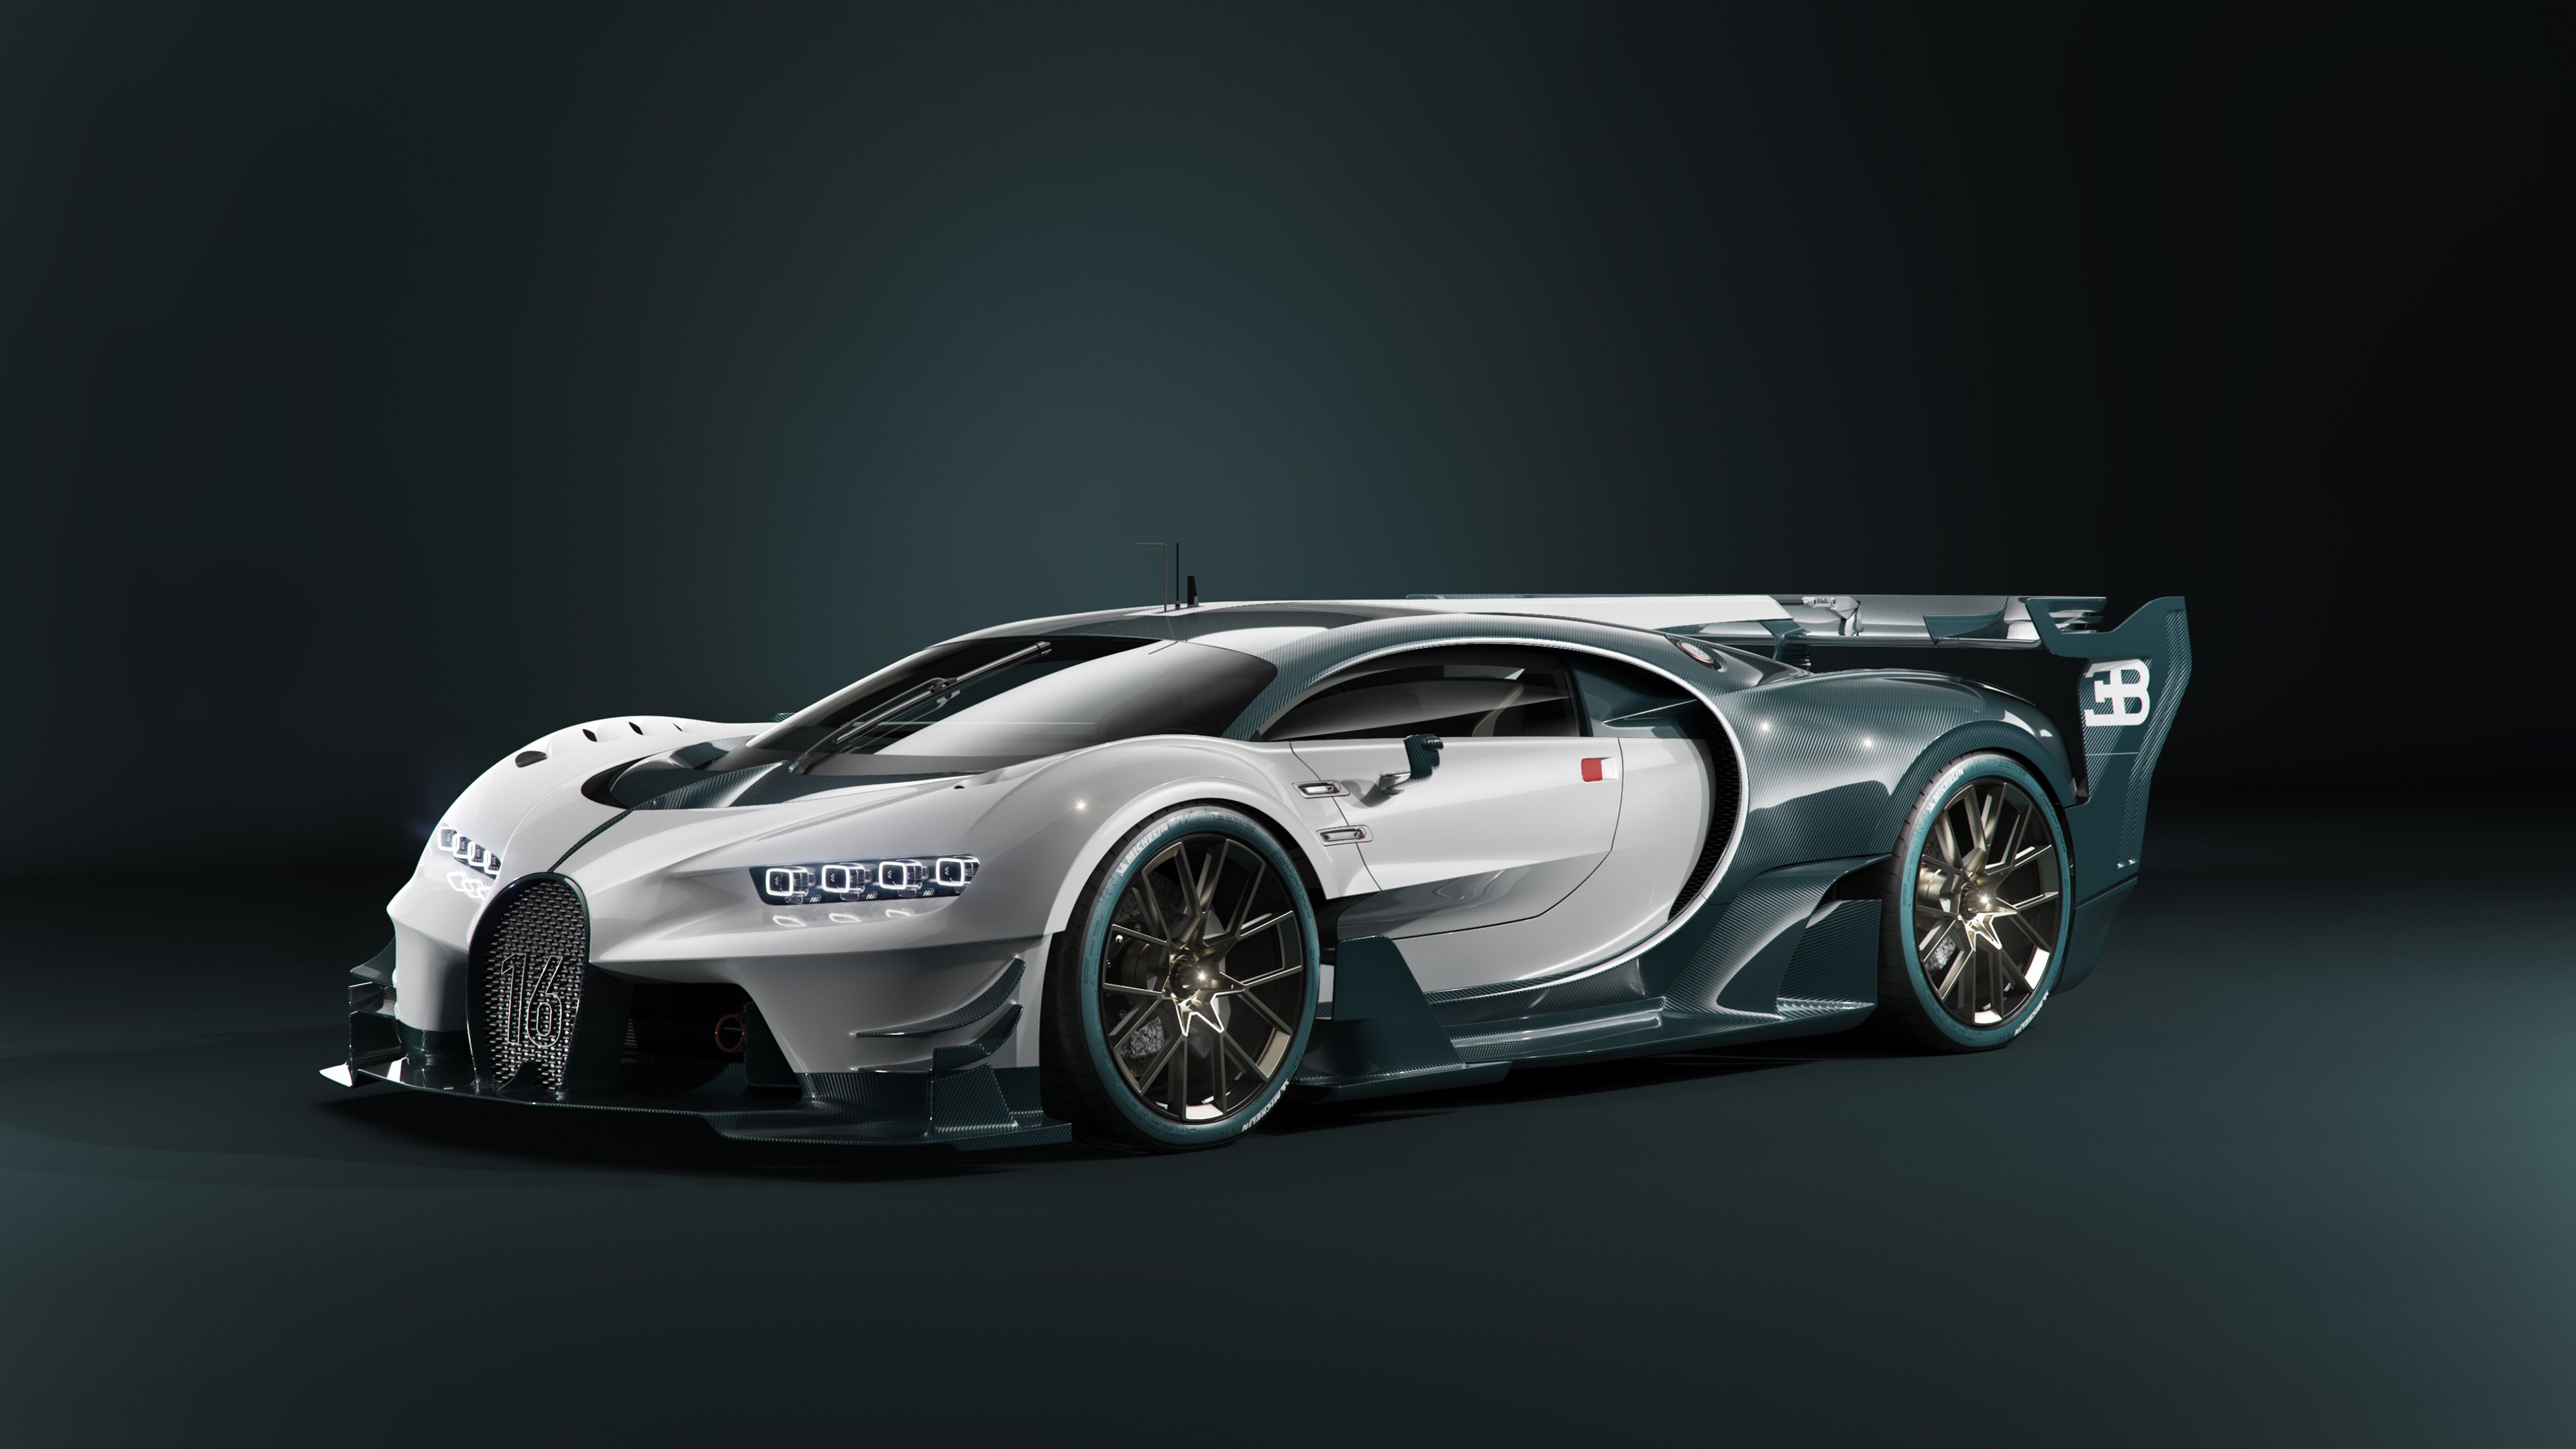 Bugatti Chiron Gt 4k Hd Wallpapers Bugatti Wallpapers Bugatti Chiron Wallpapers Behance Wallpapers Artist Wall Bugatti Wallpapers Bugatti Chiron Gt Bugatti